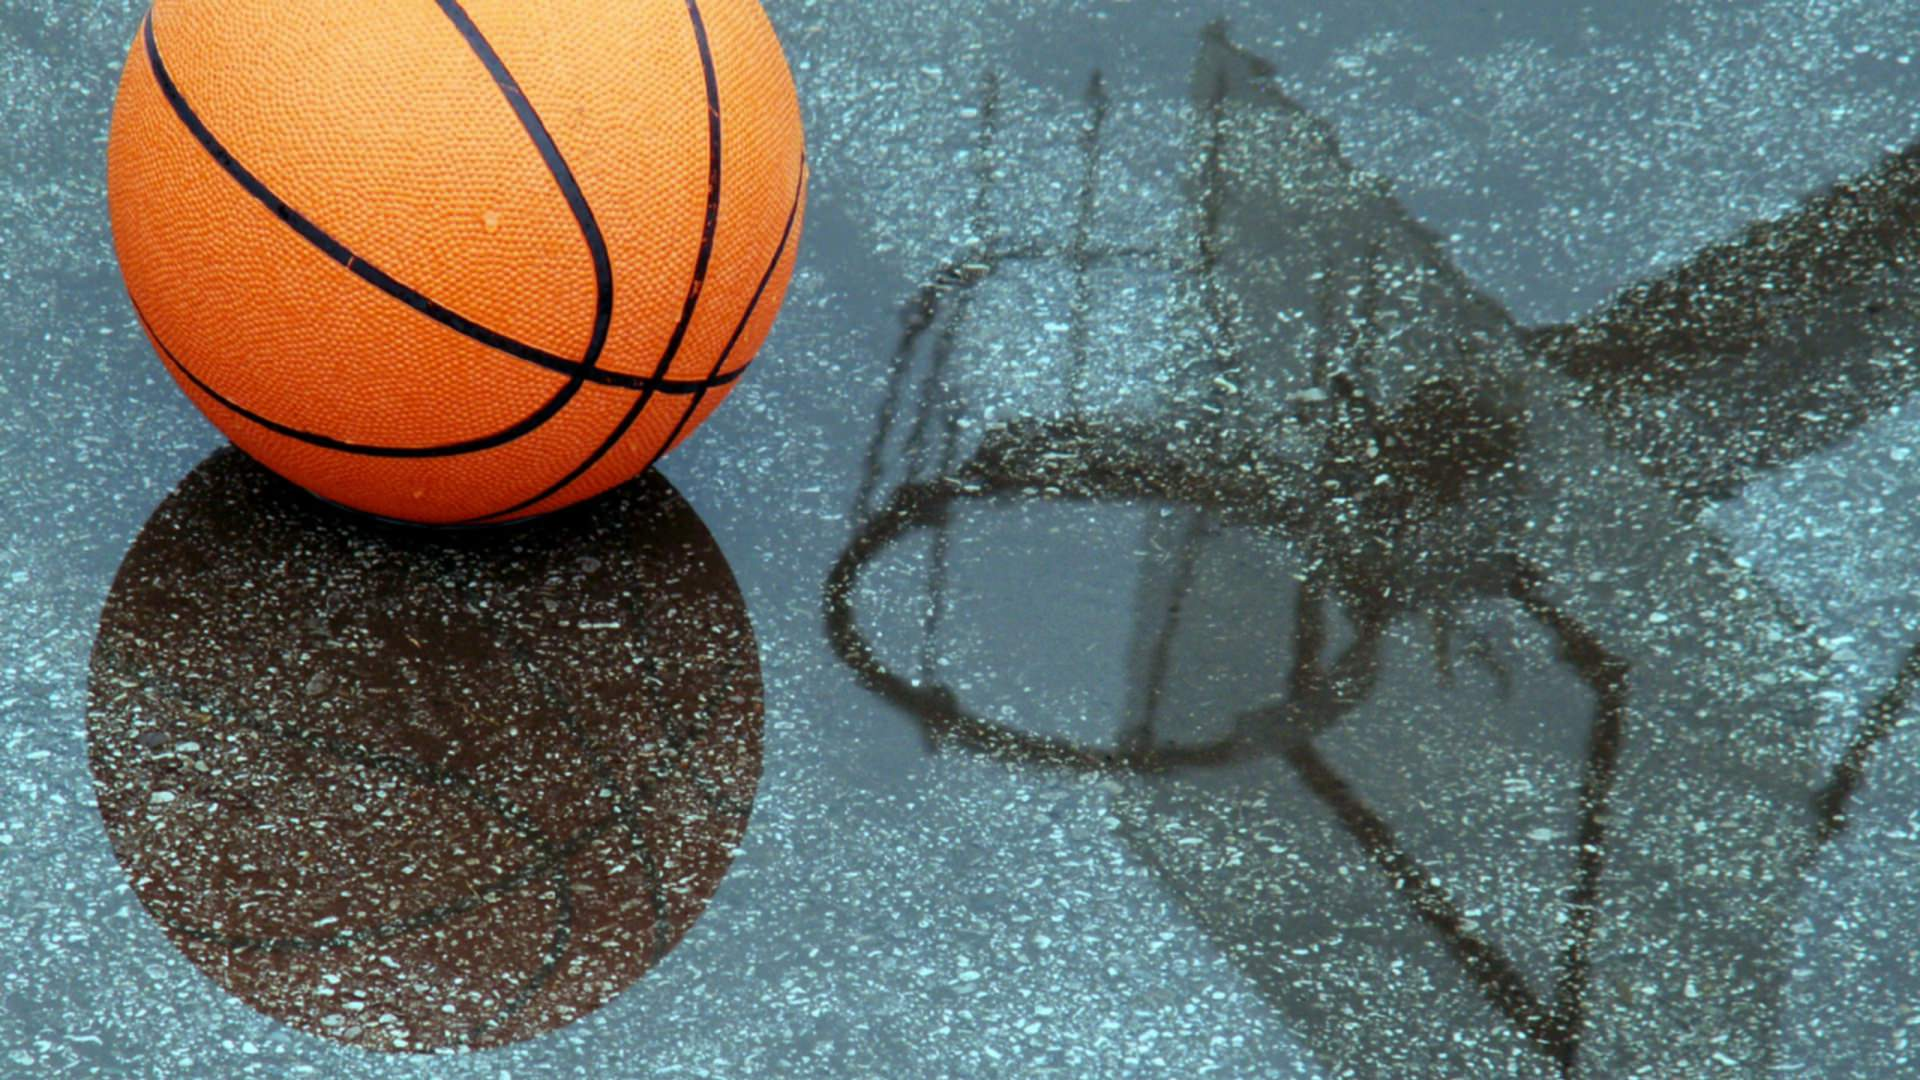 30+ Basketball Backgrounds, Wallpapers, Images, Pictures : Design ...